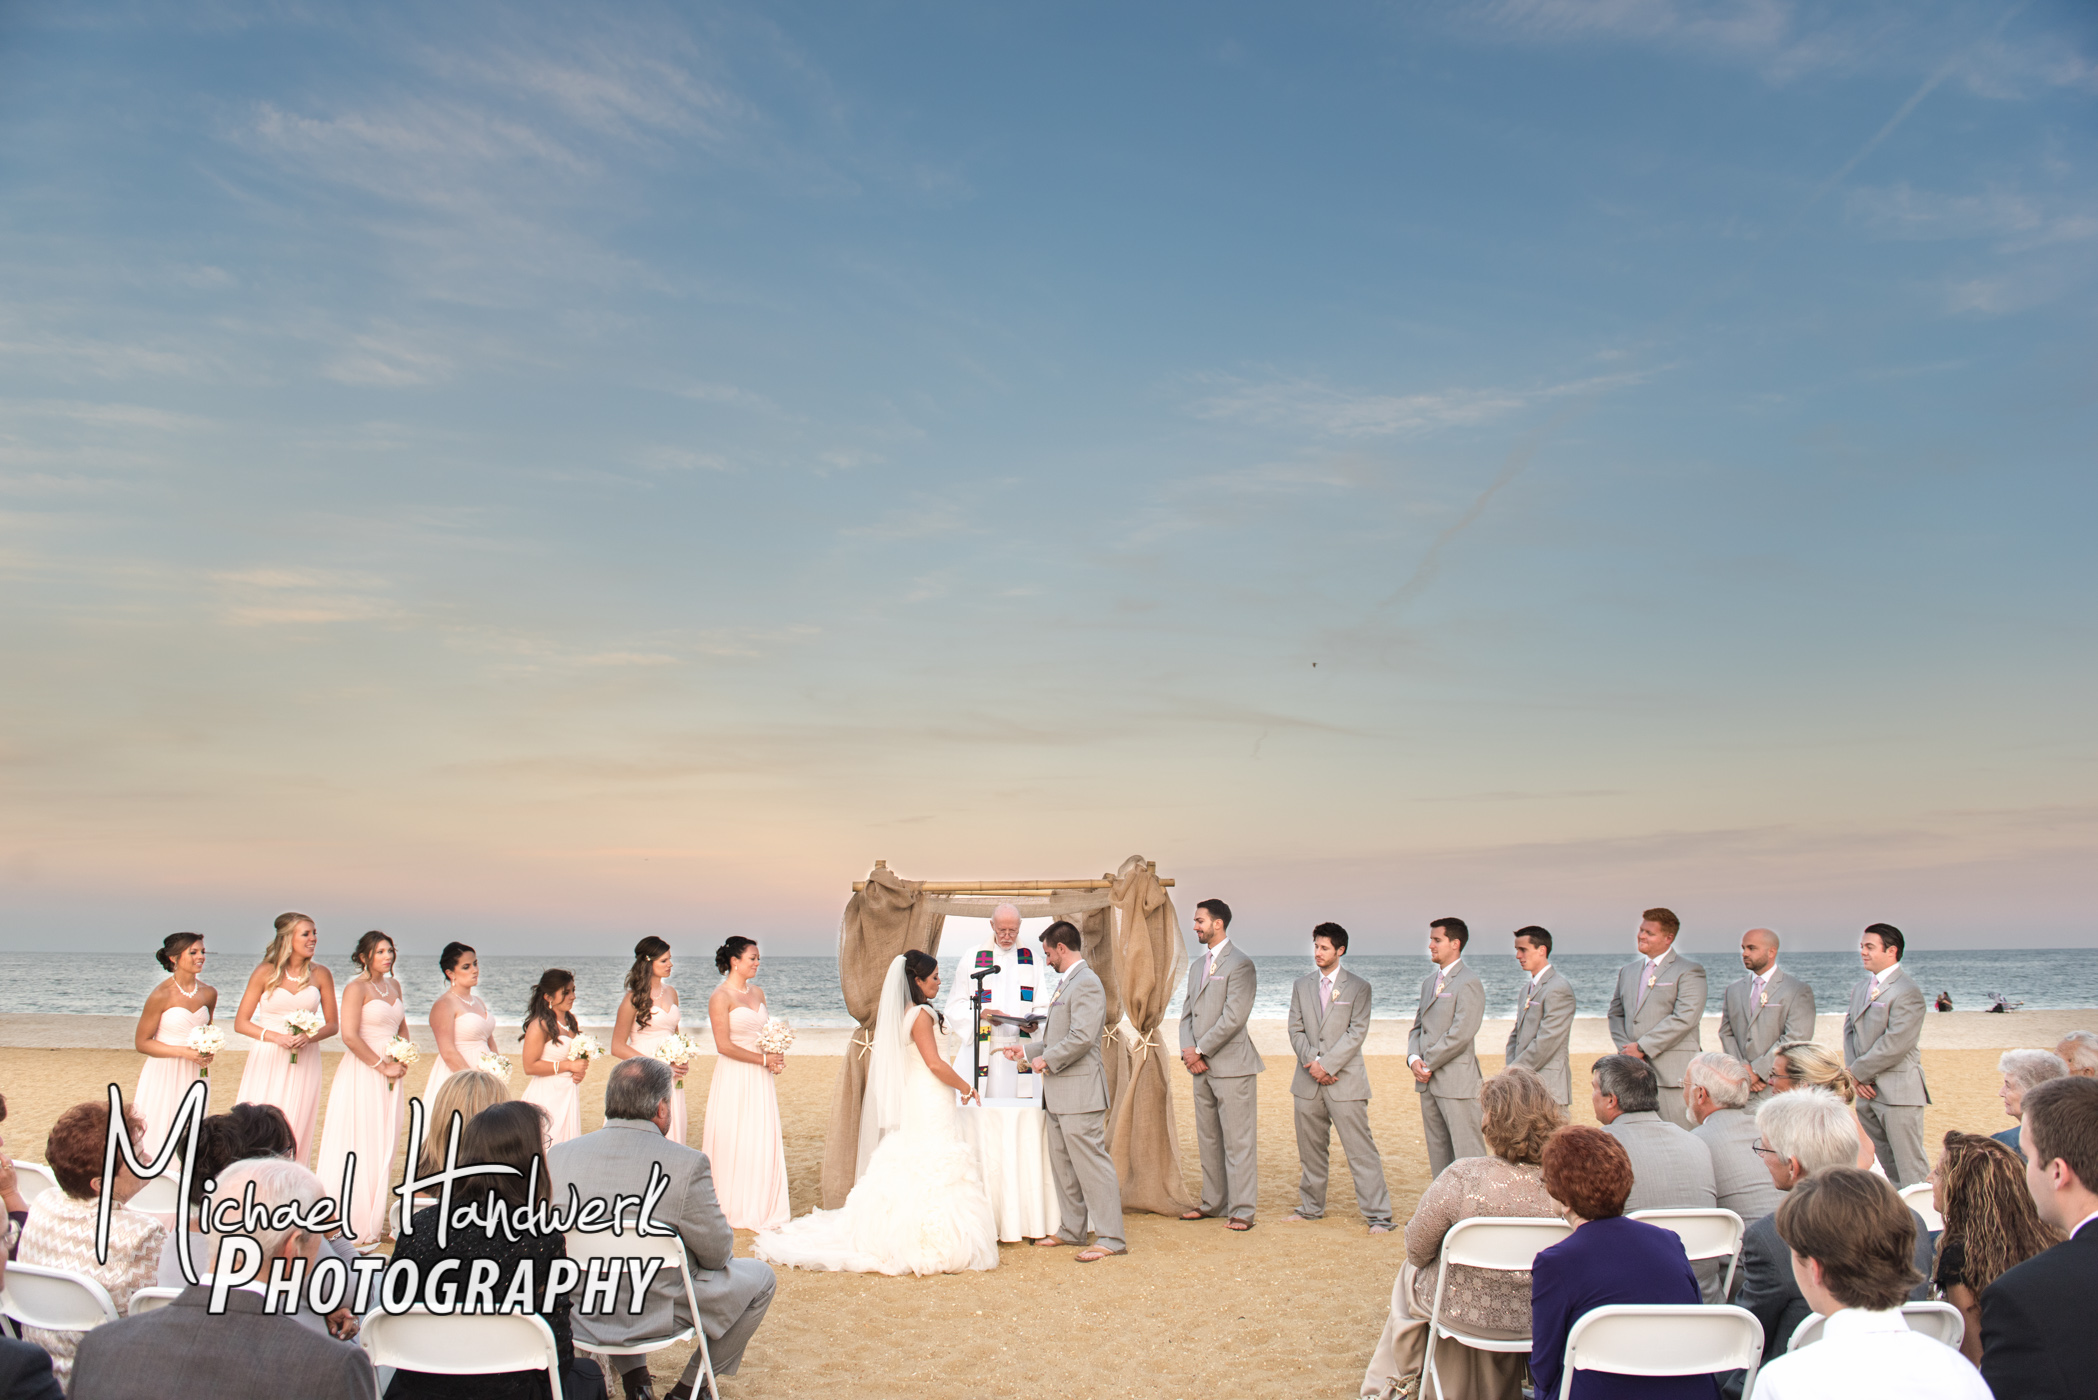 Wedding photographer phoenixville pa 19460 best for Wedding photography packages nj